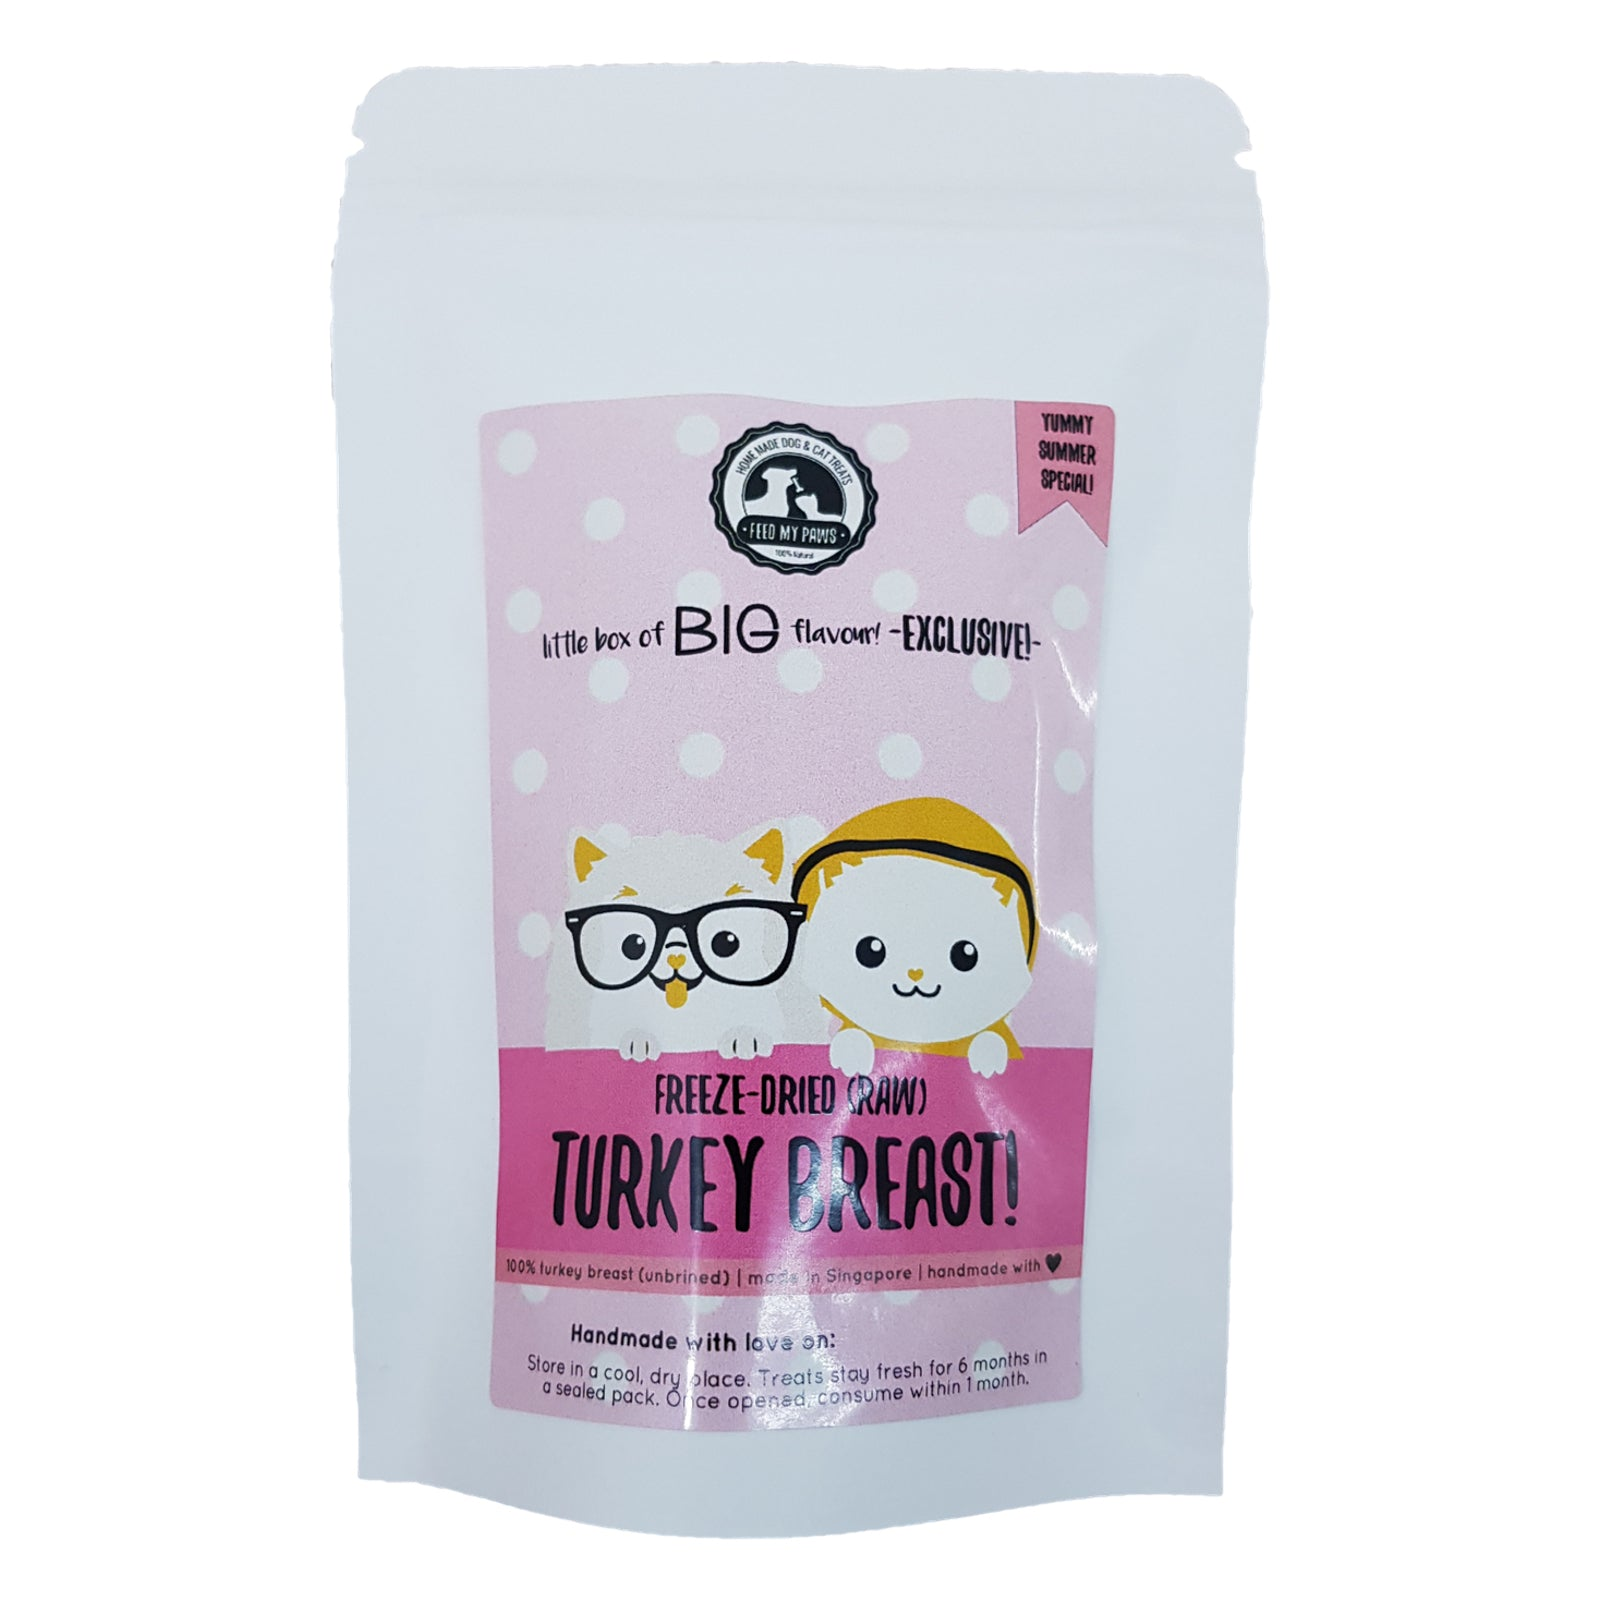 Freeze-dried Raw Turkey Breast (Mini packs!) *Limited edition!*